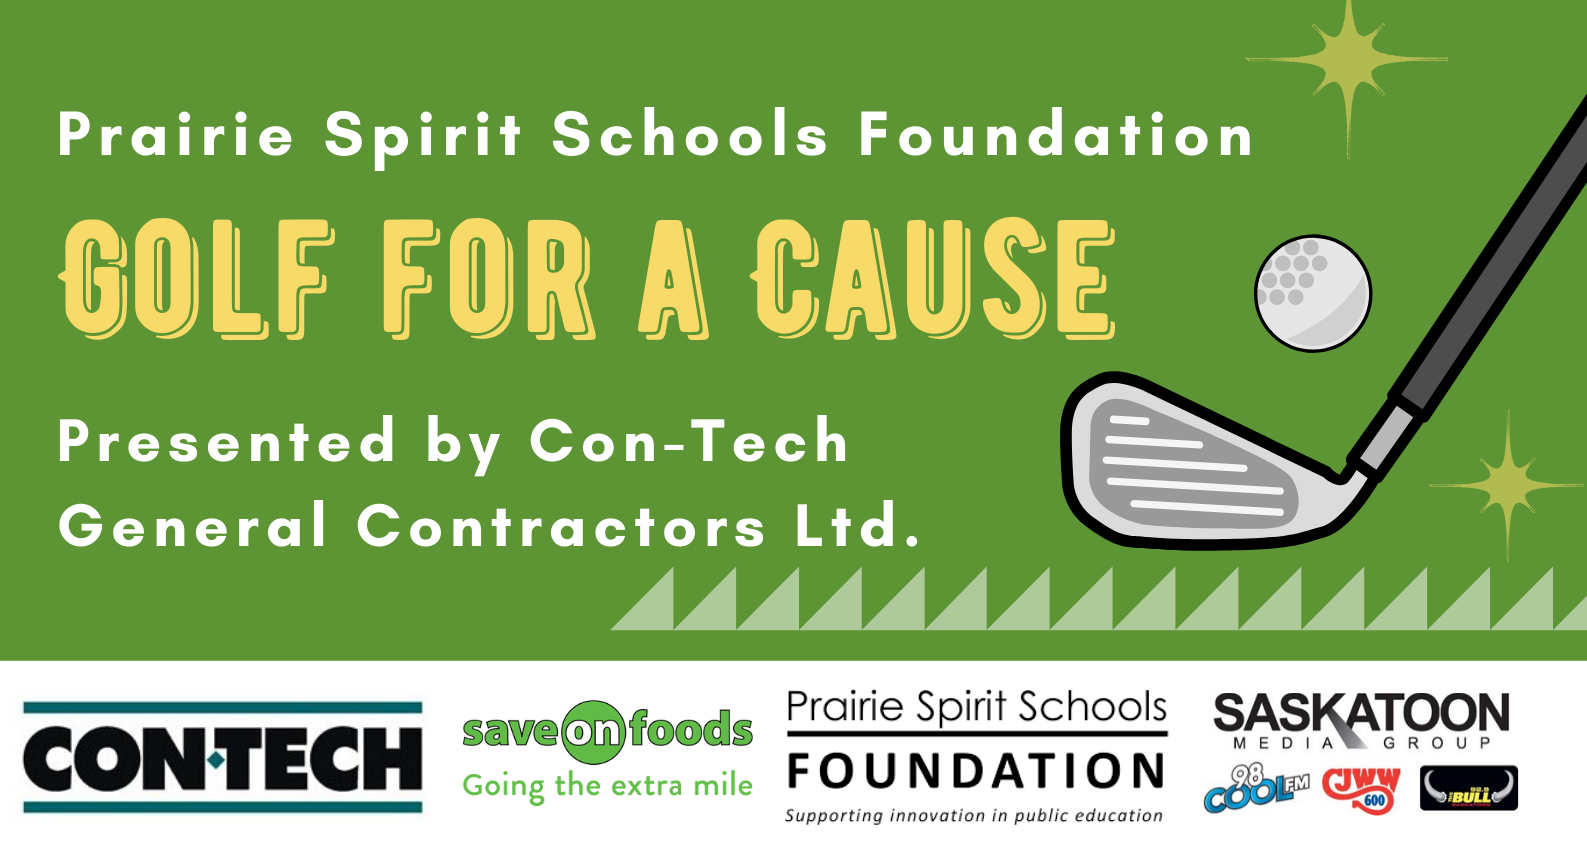 PSSF 'Golf For A Cause' Presented by Con-Tech